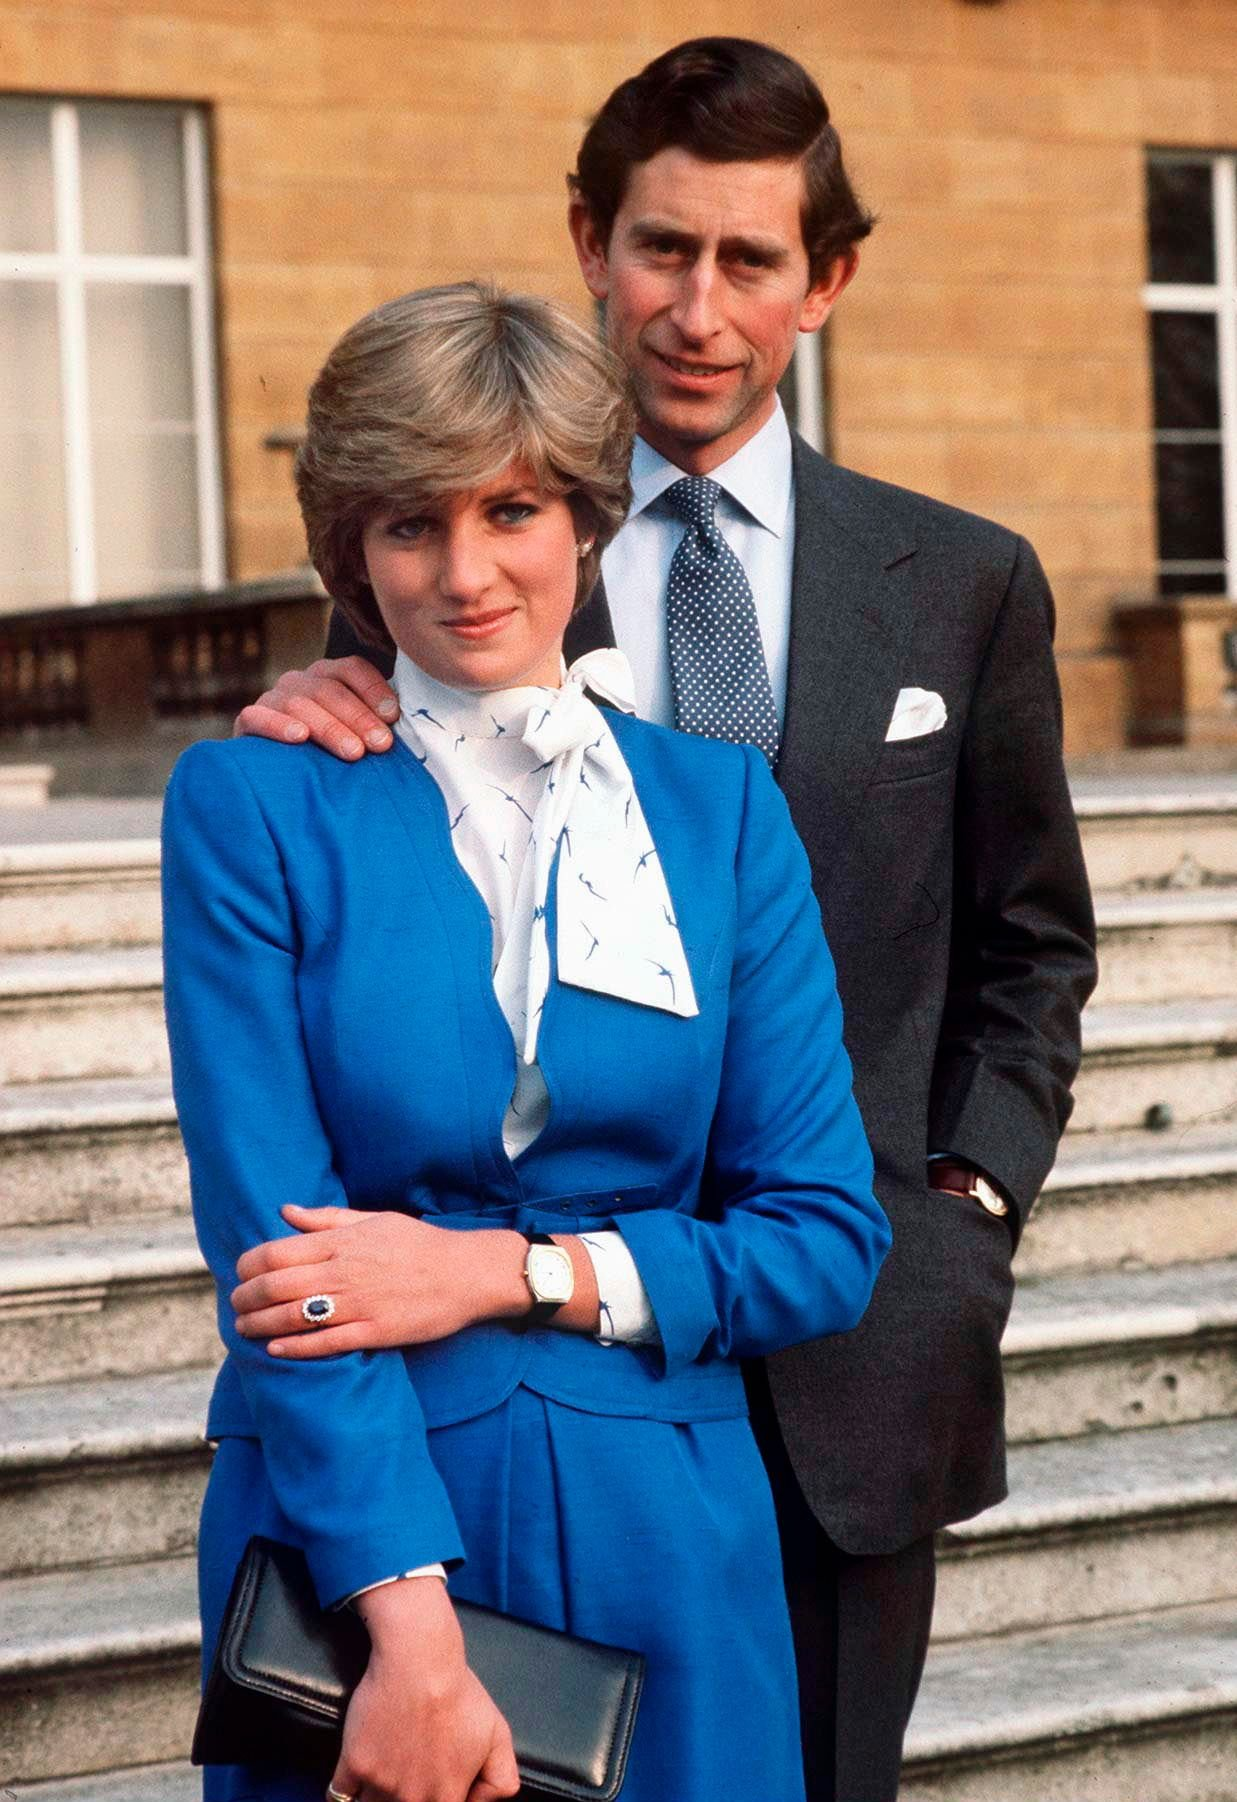 Lady Diana Spencer shows off her sapphire and diamond engagement ring while posing with Prince Charles at Buckingham Palace after the announcement of their engagement | Photo: Tim Graham Photo Library/Getty Images